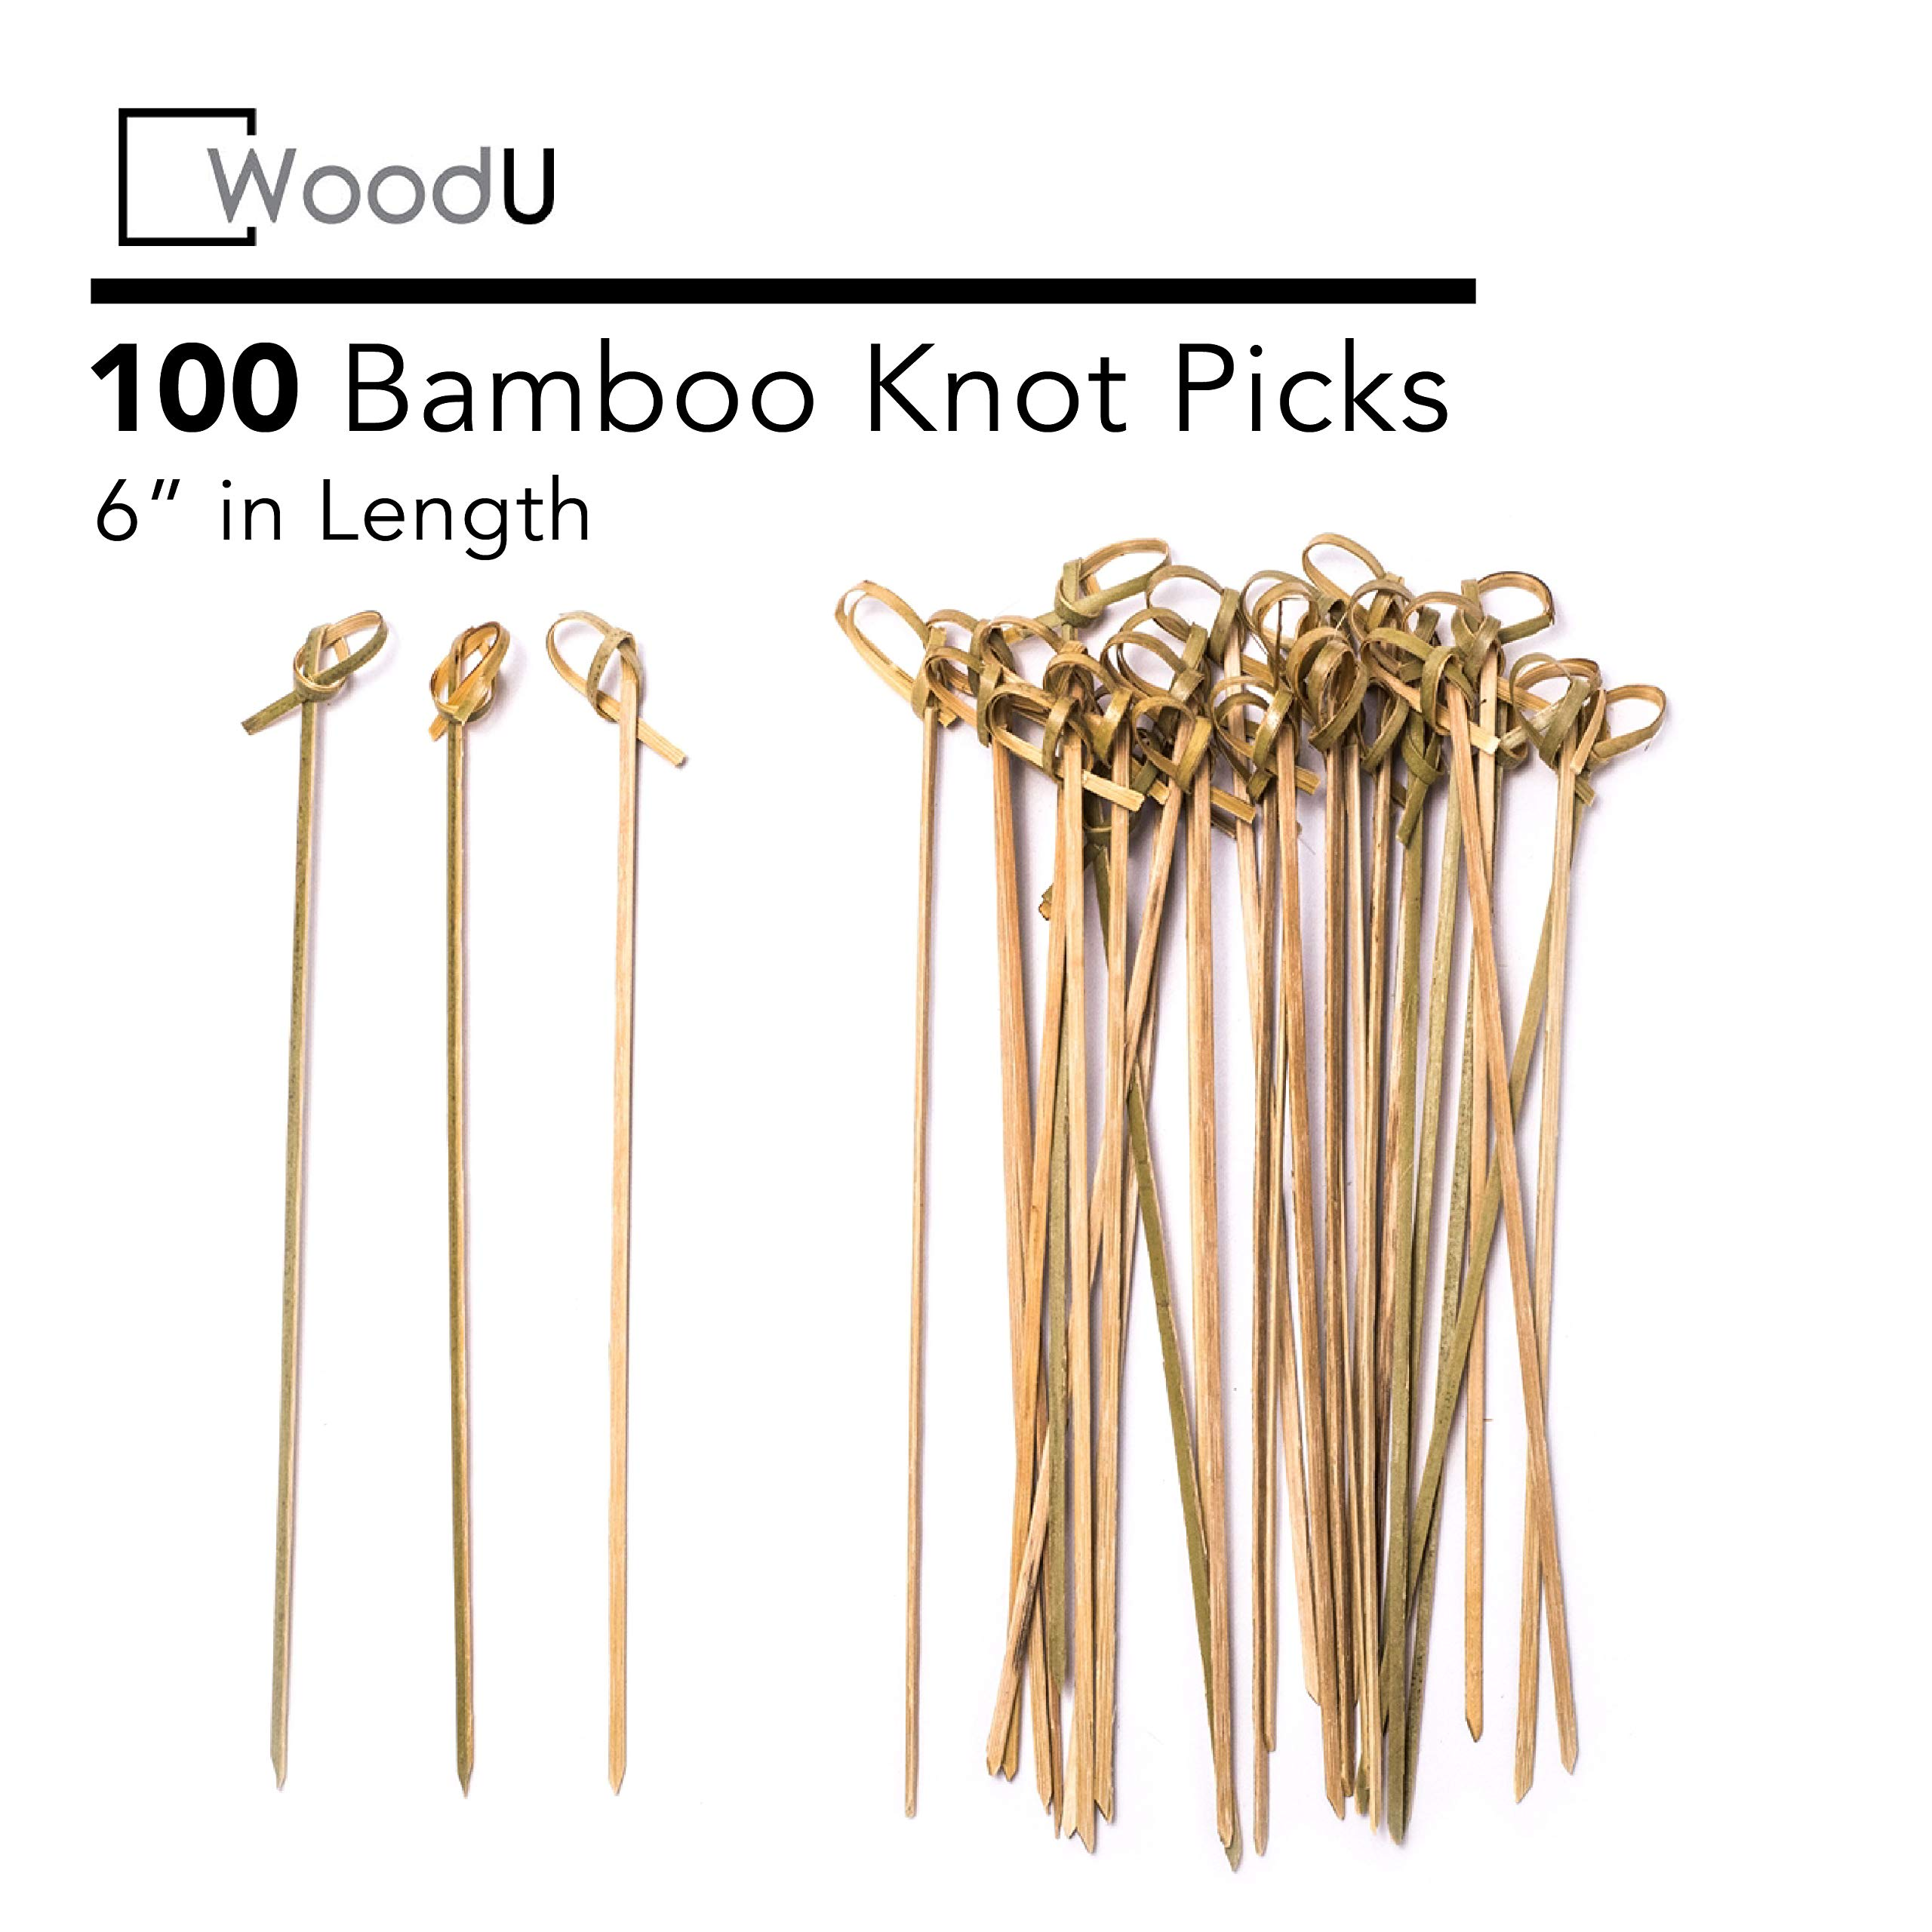 """Bamboo Knot Picks 100pc 6"""" Cocktail Skewers Eco friendly Biodegradable"""